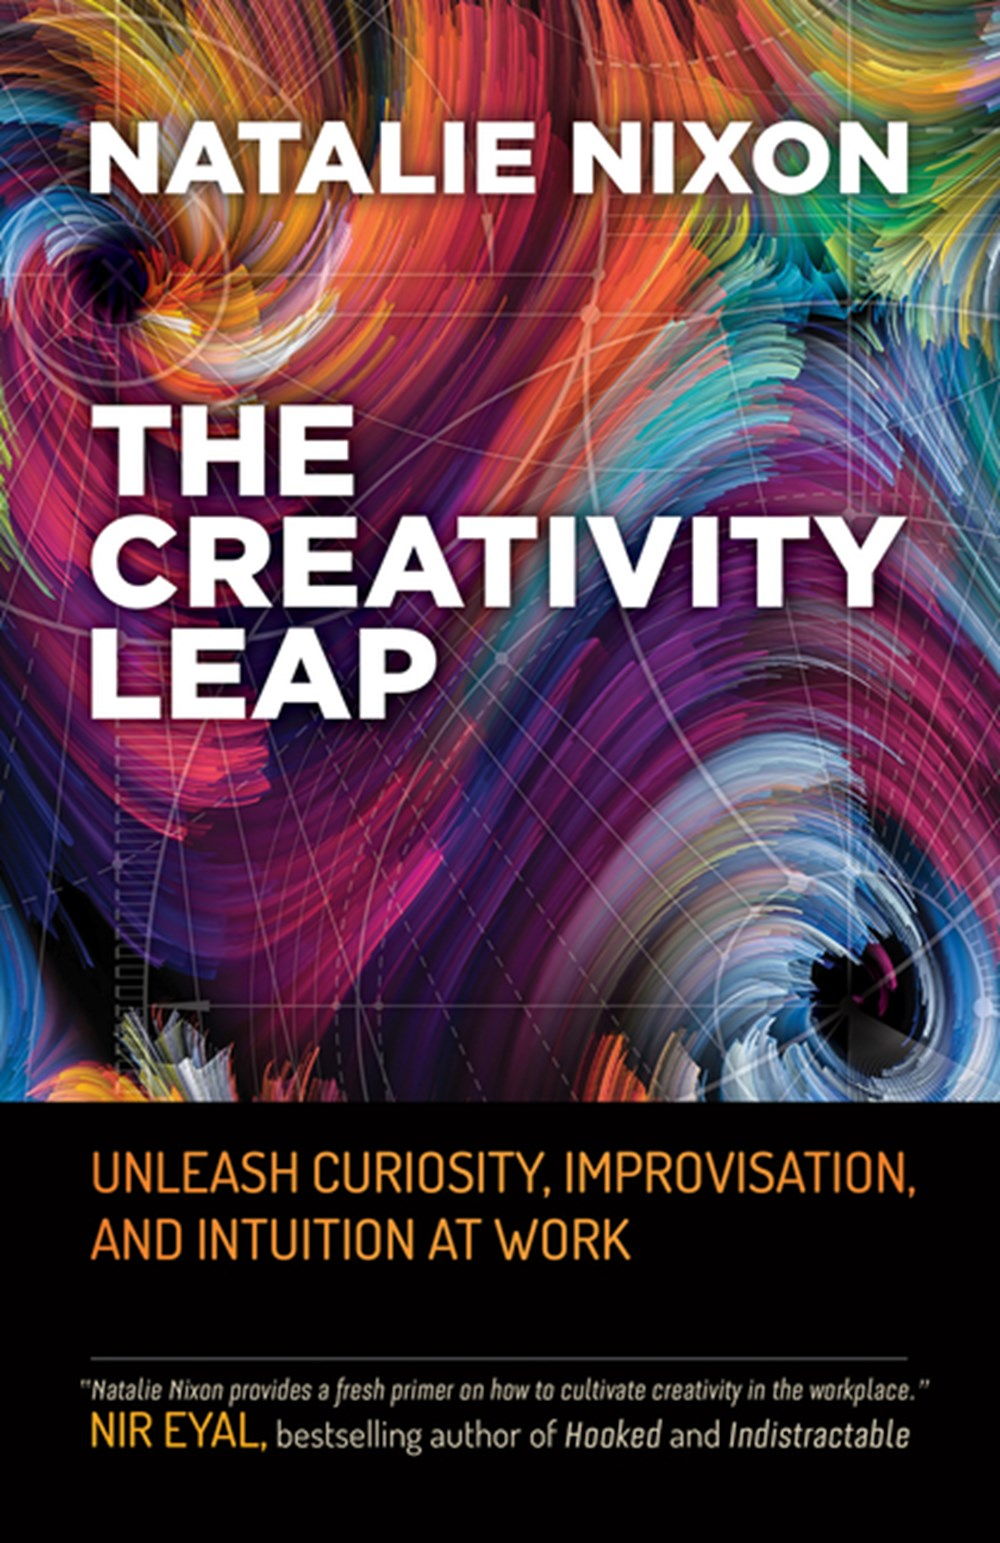 Creativity Leap Unleash Curiosity, Improvisation, and Intuition at Work